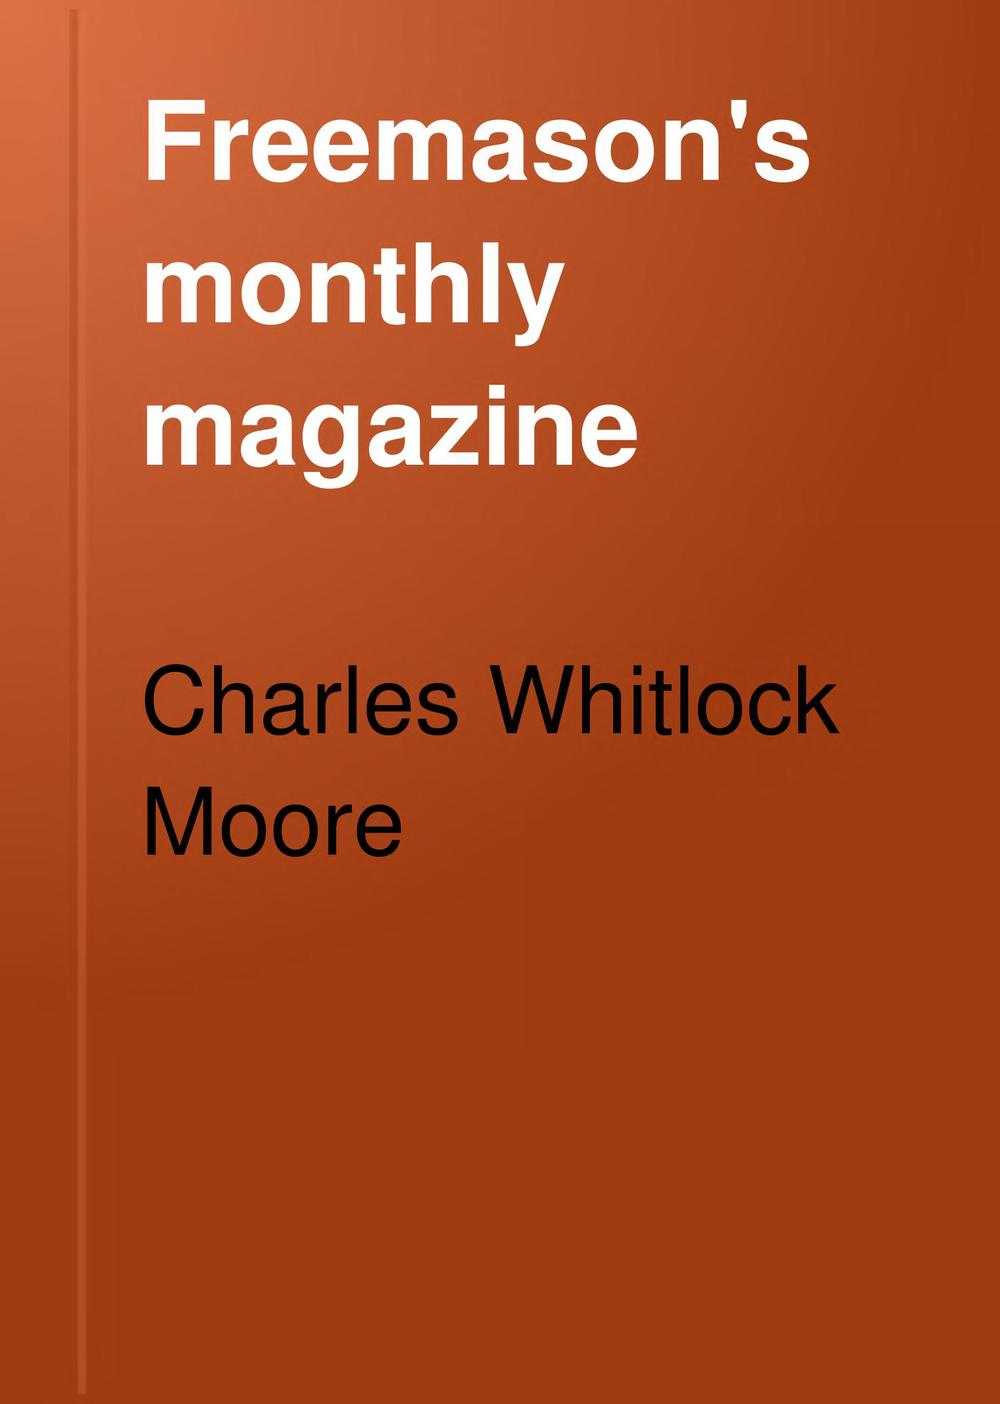 The Freemason's Monthly